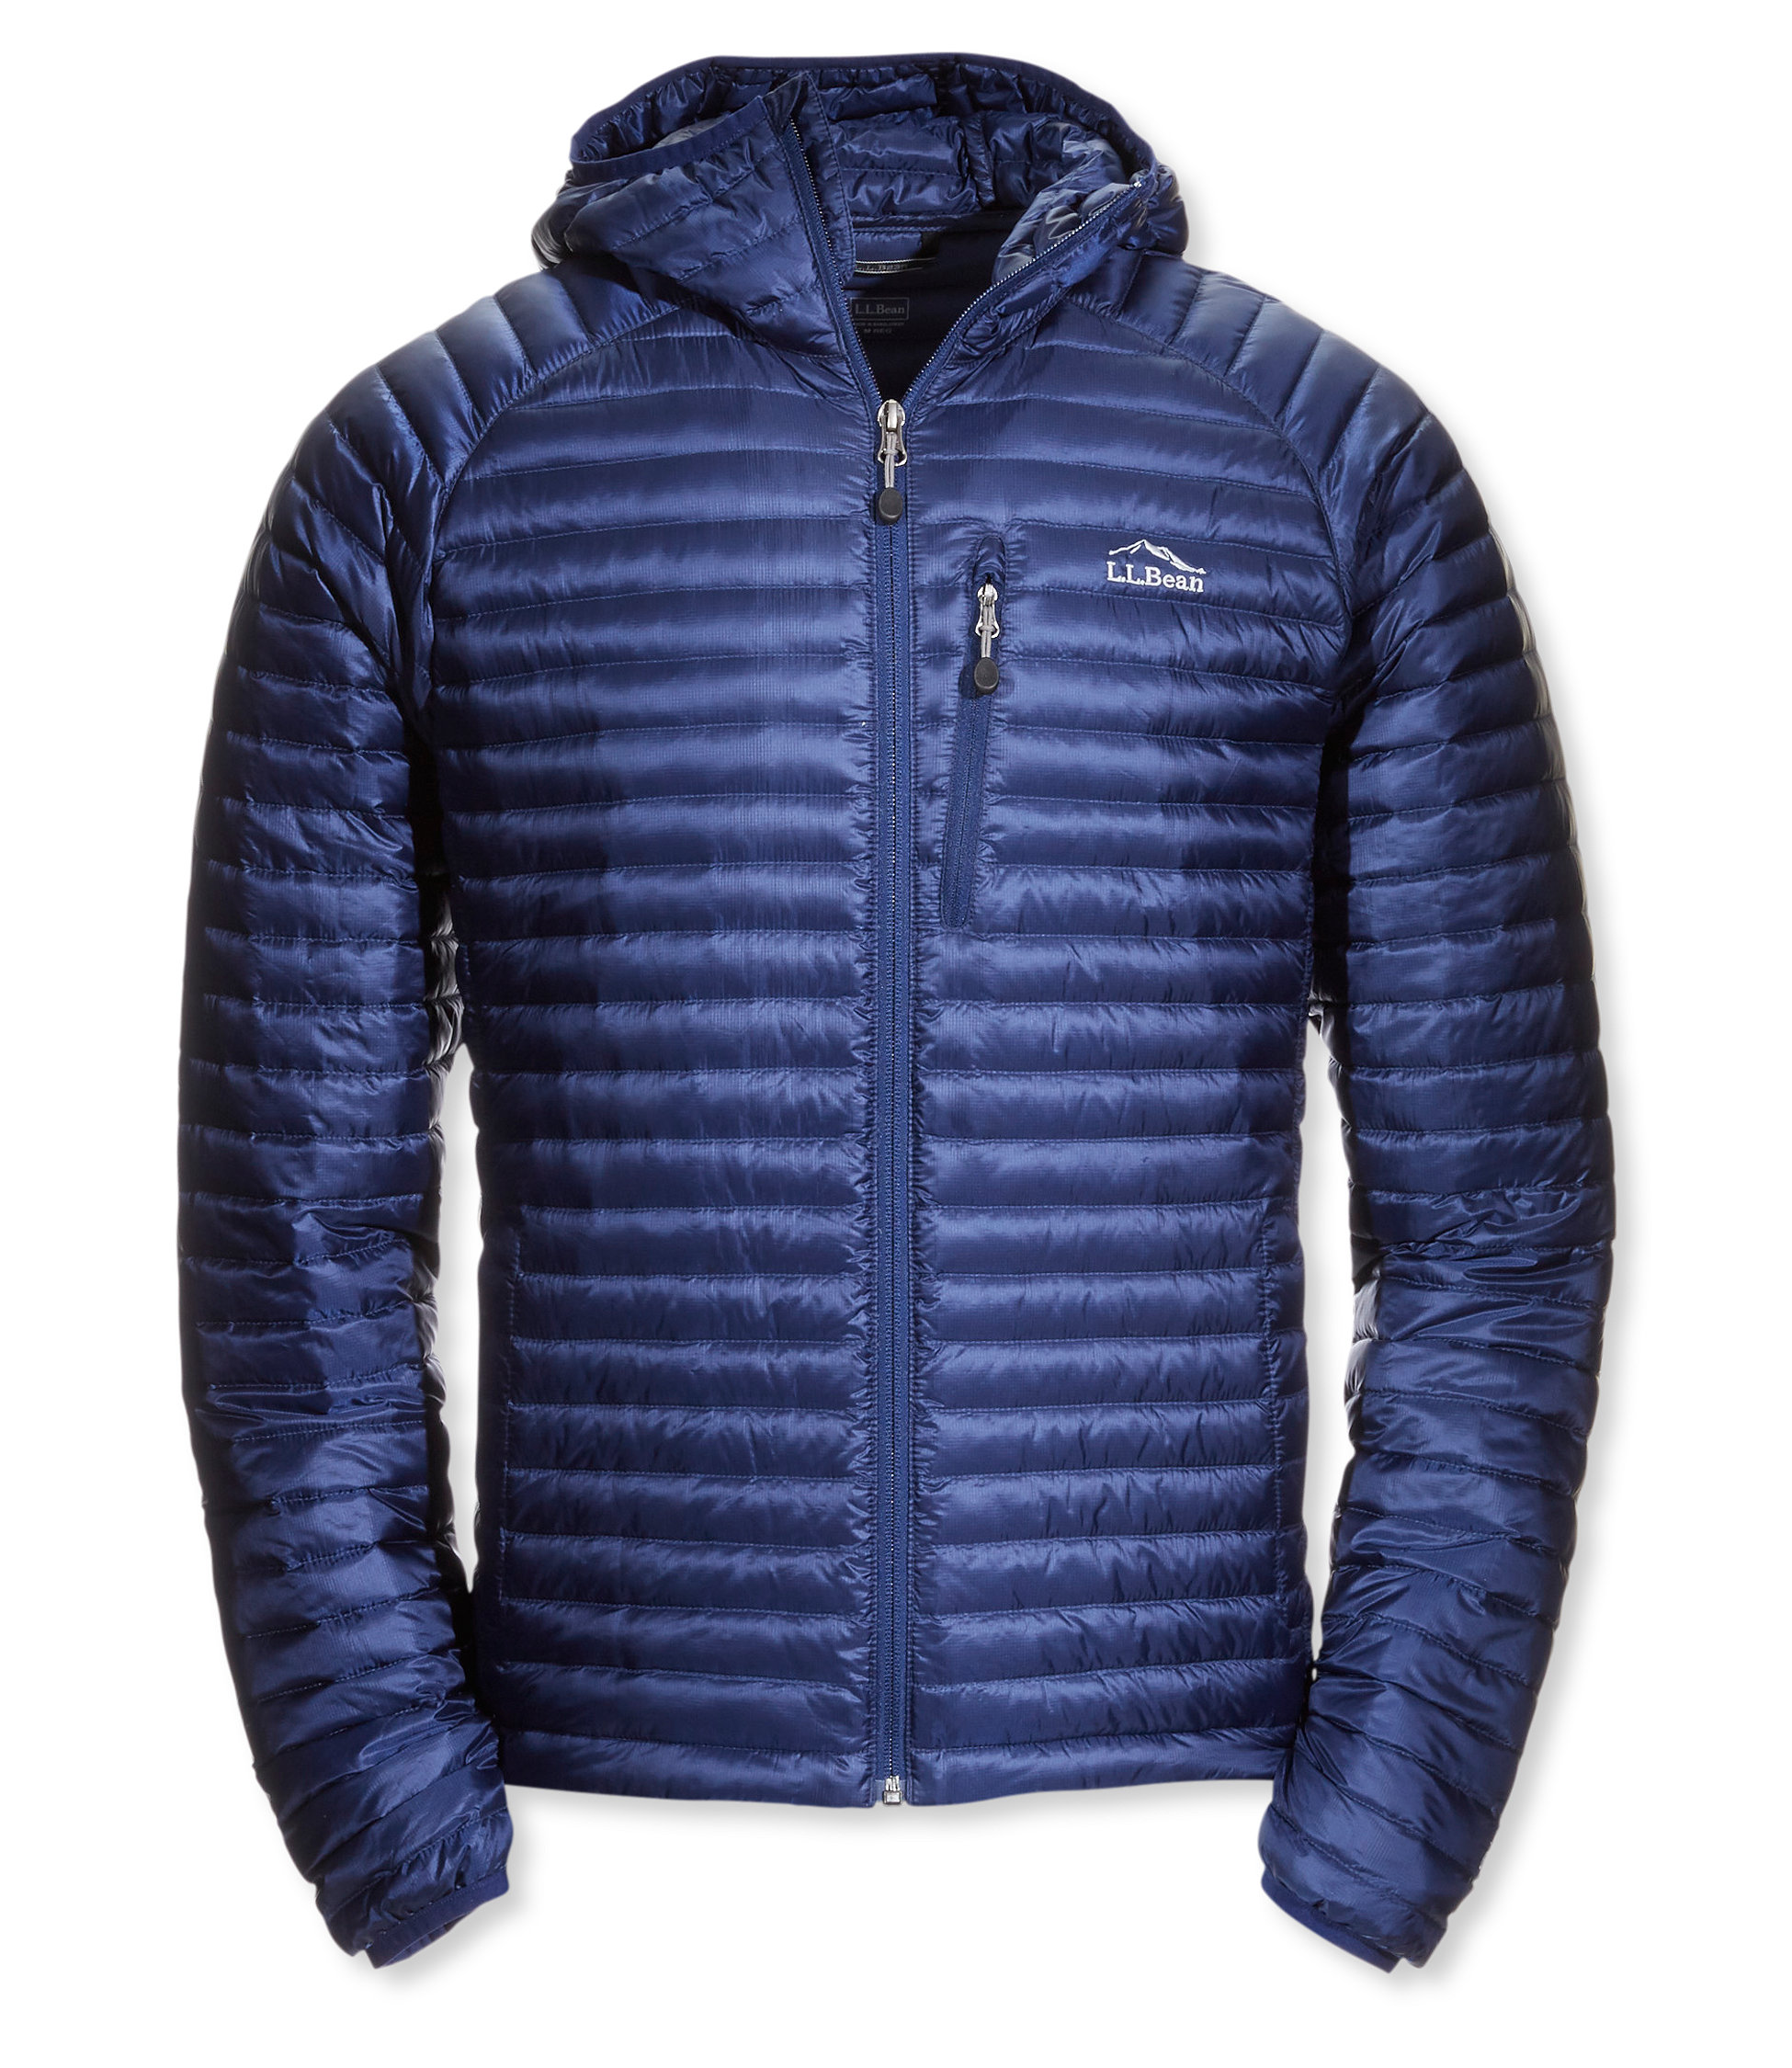 photo: L.L.Bean Ultralight 850 Down Sweater, Hooded down insulated jacket